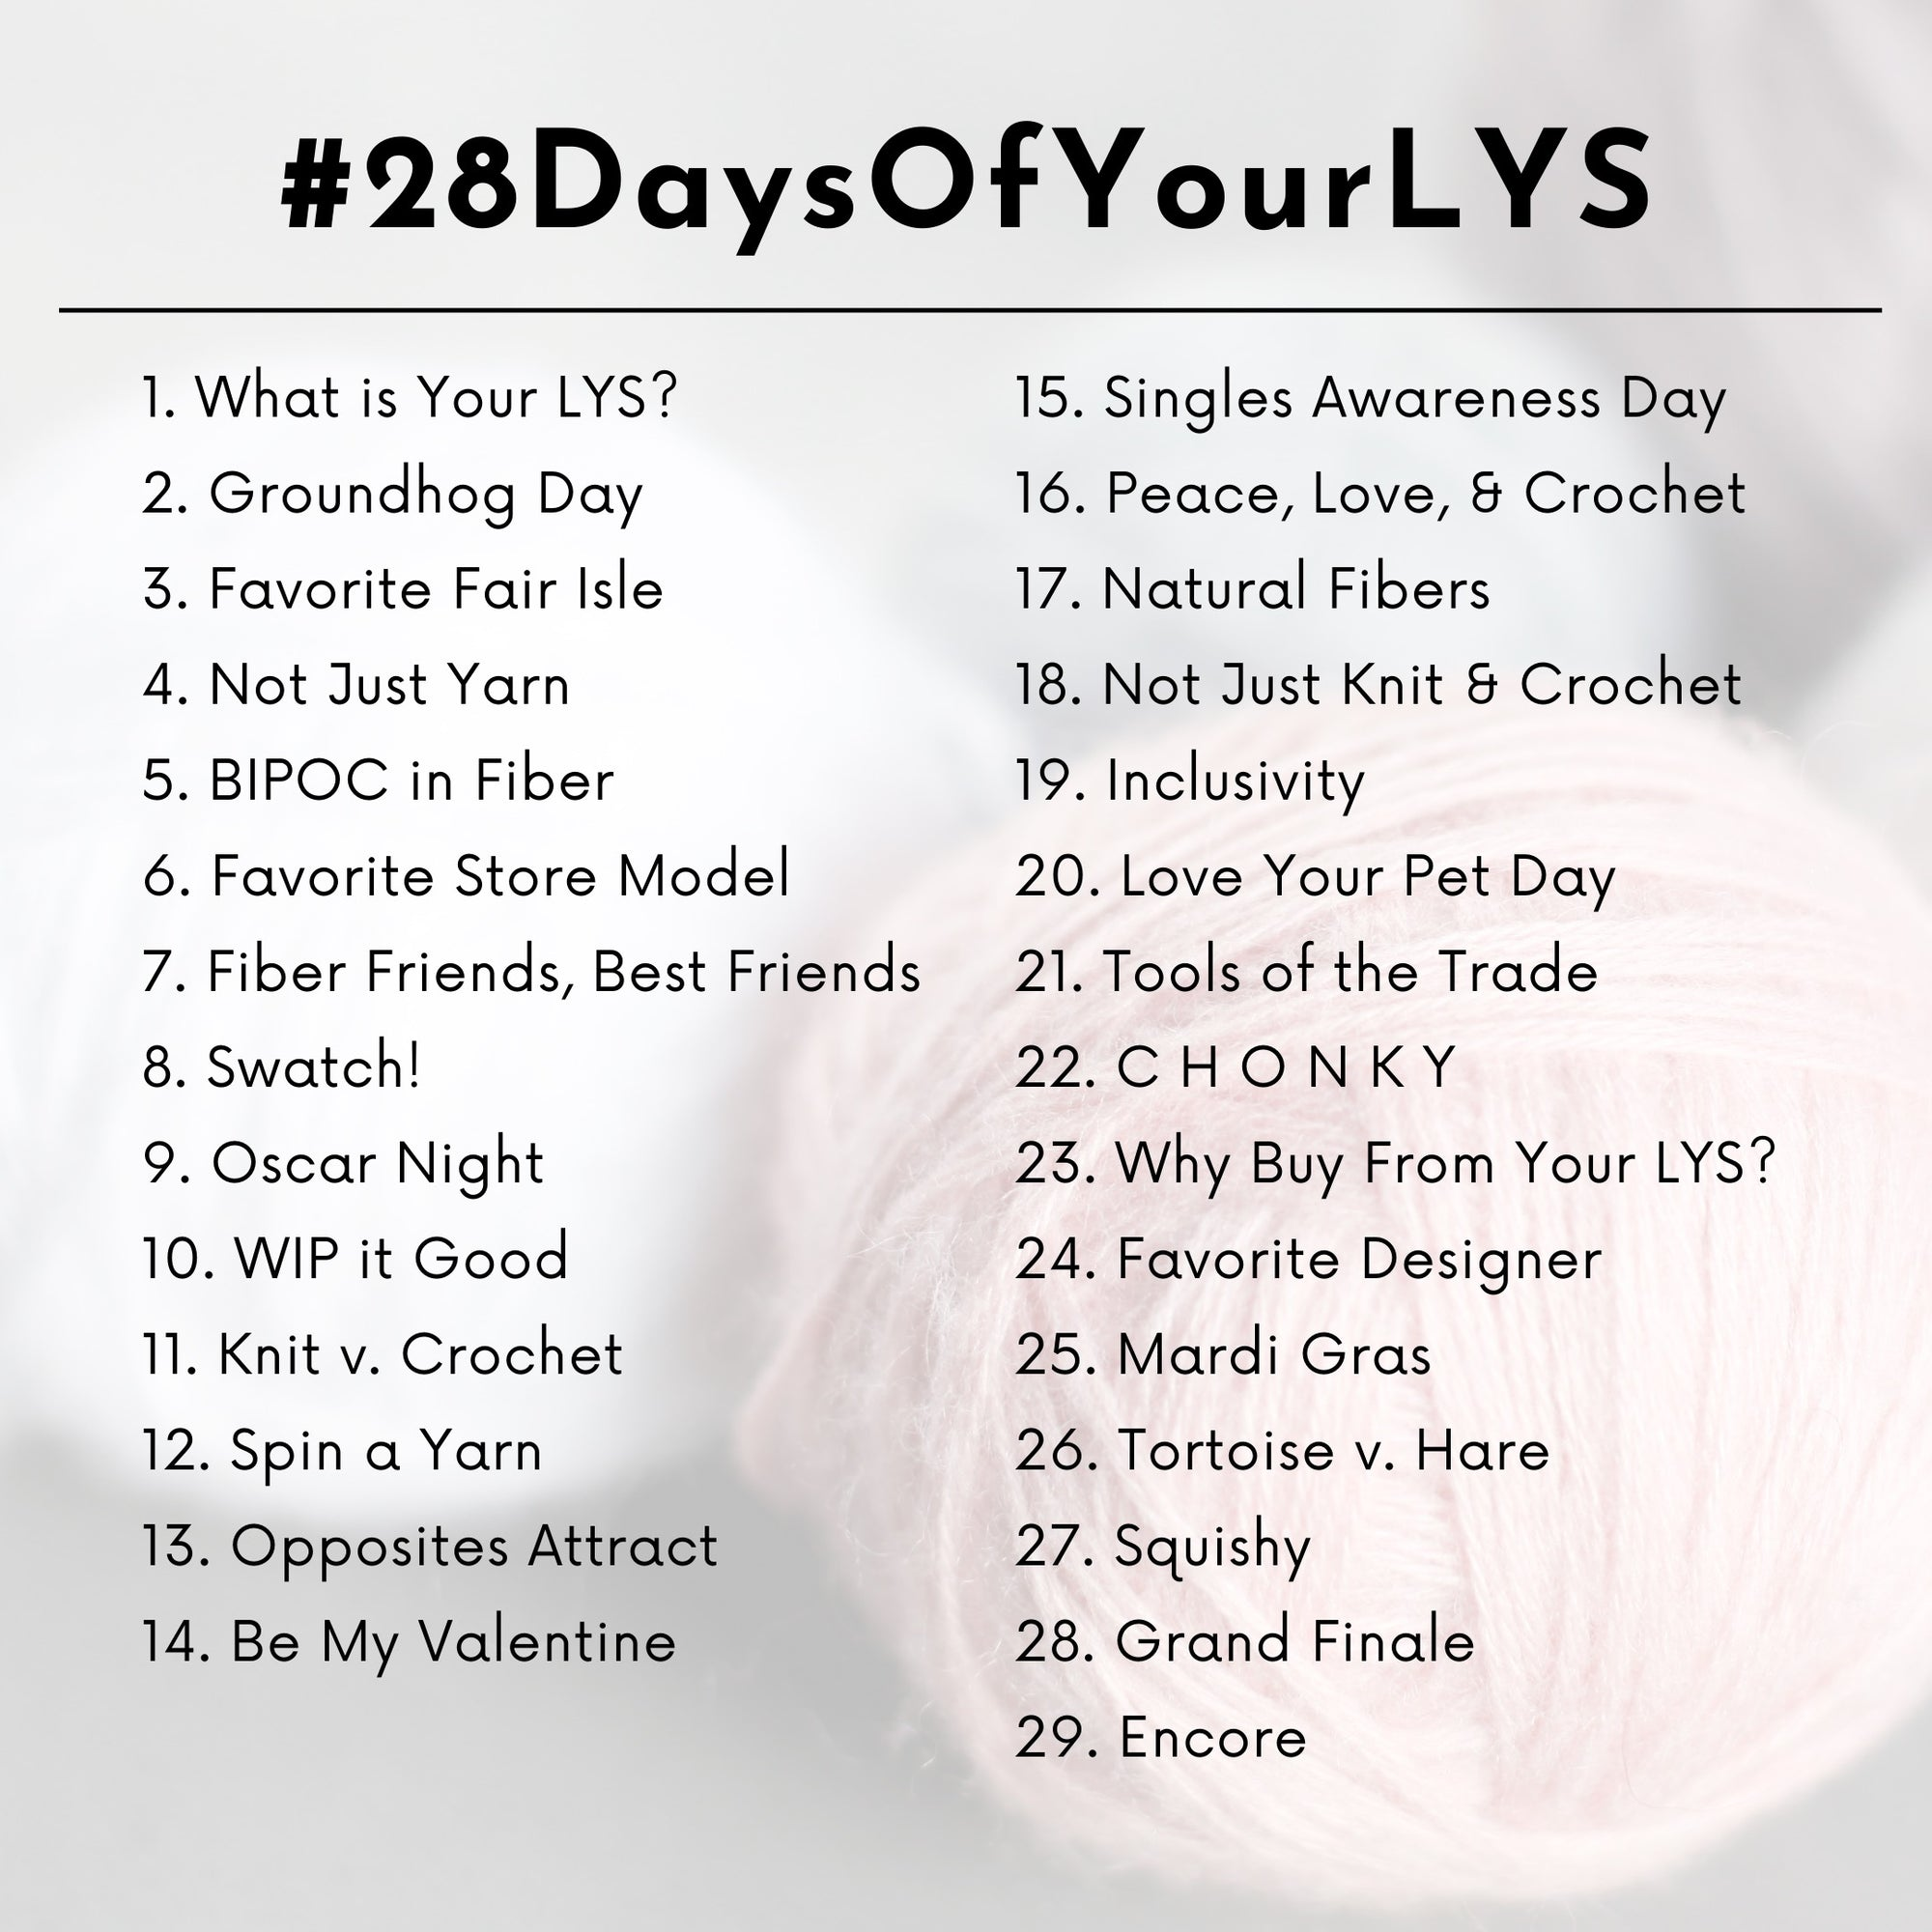 #28DAYSOFYOURLYS WRAP UP